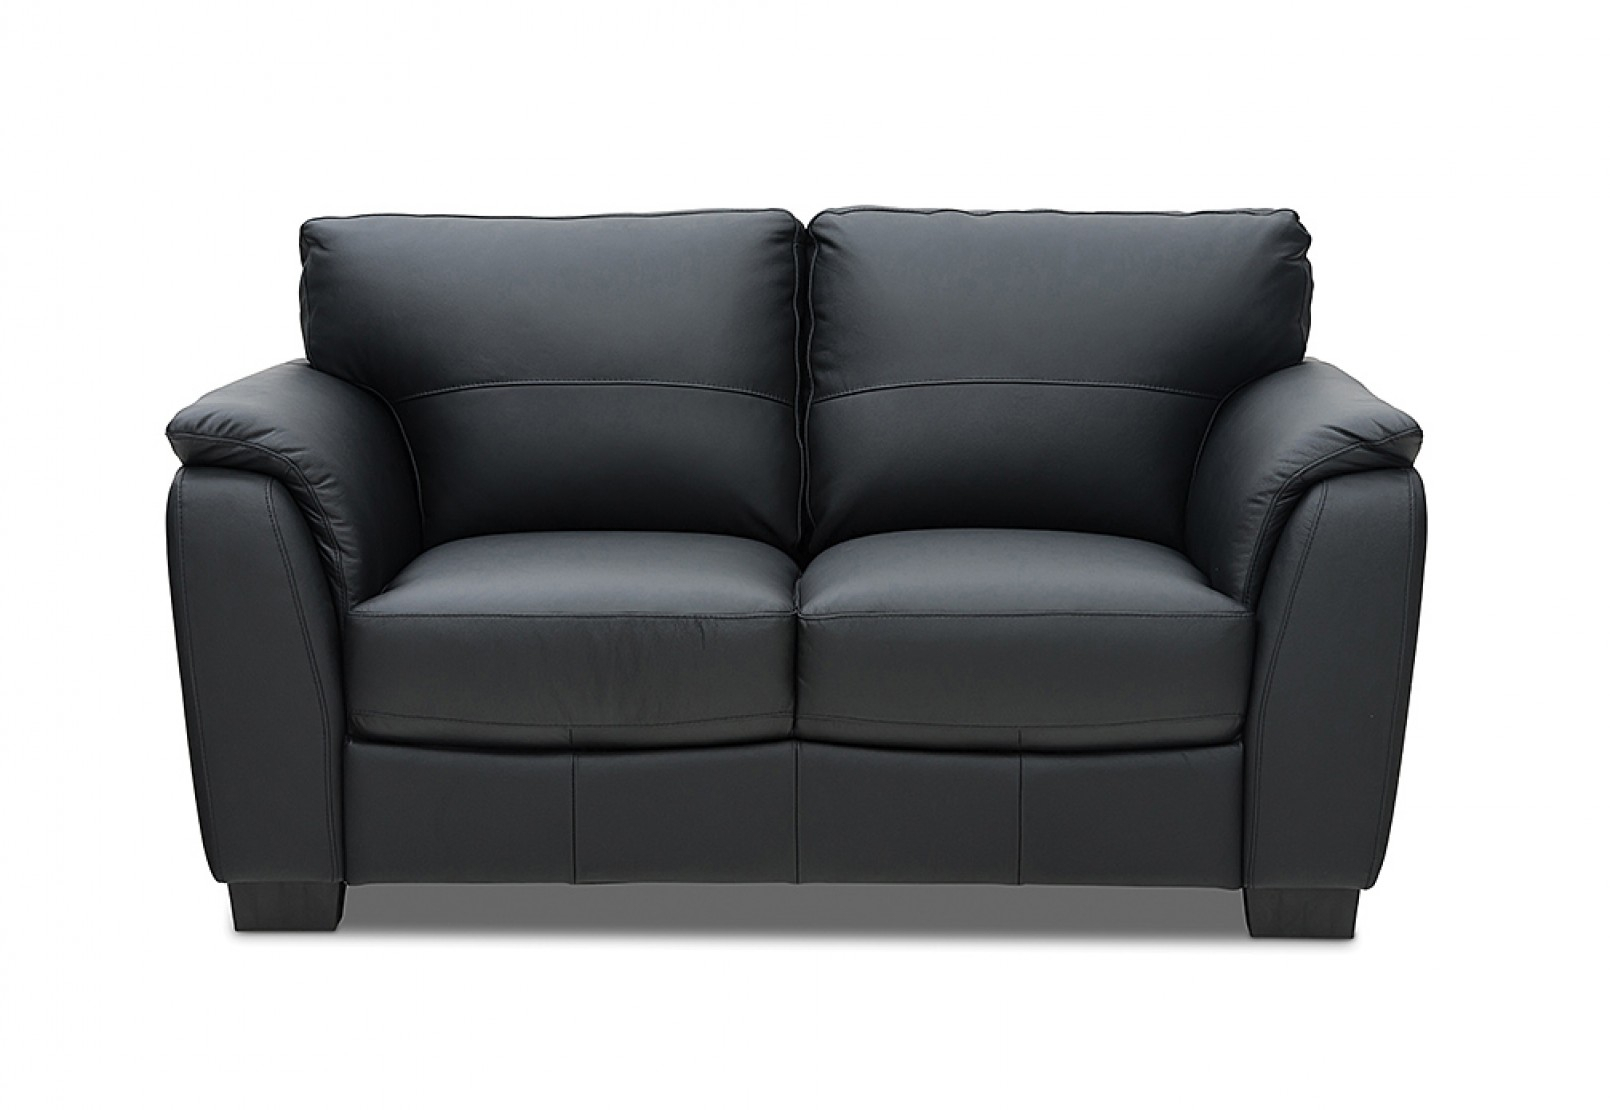 Marissa Leather 2 Seater Sofa | Amart Furniture Pertaining To Marissa Sofa Chairs (View 2 of 25)